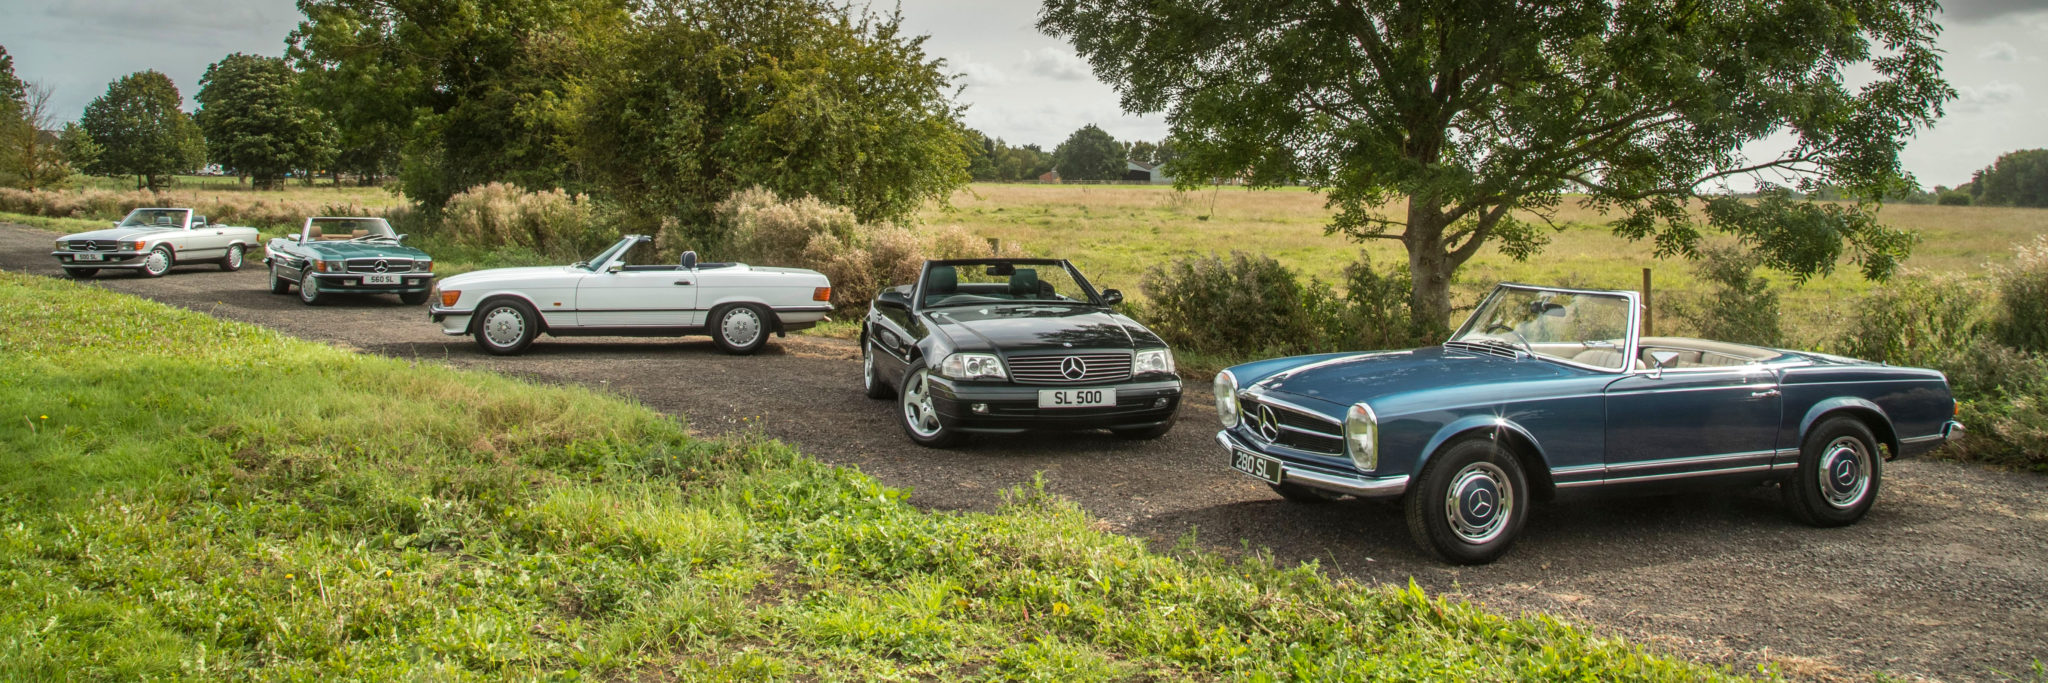 A collection of 3 different generations of SLs